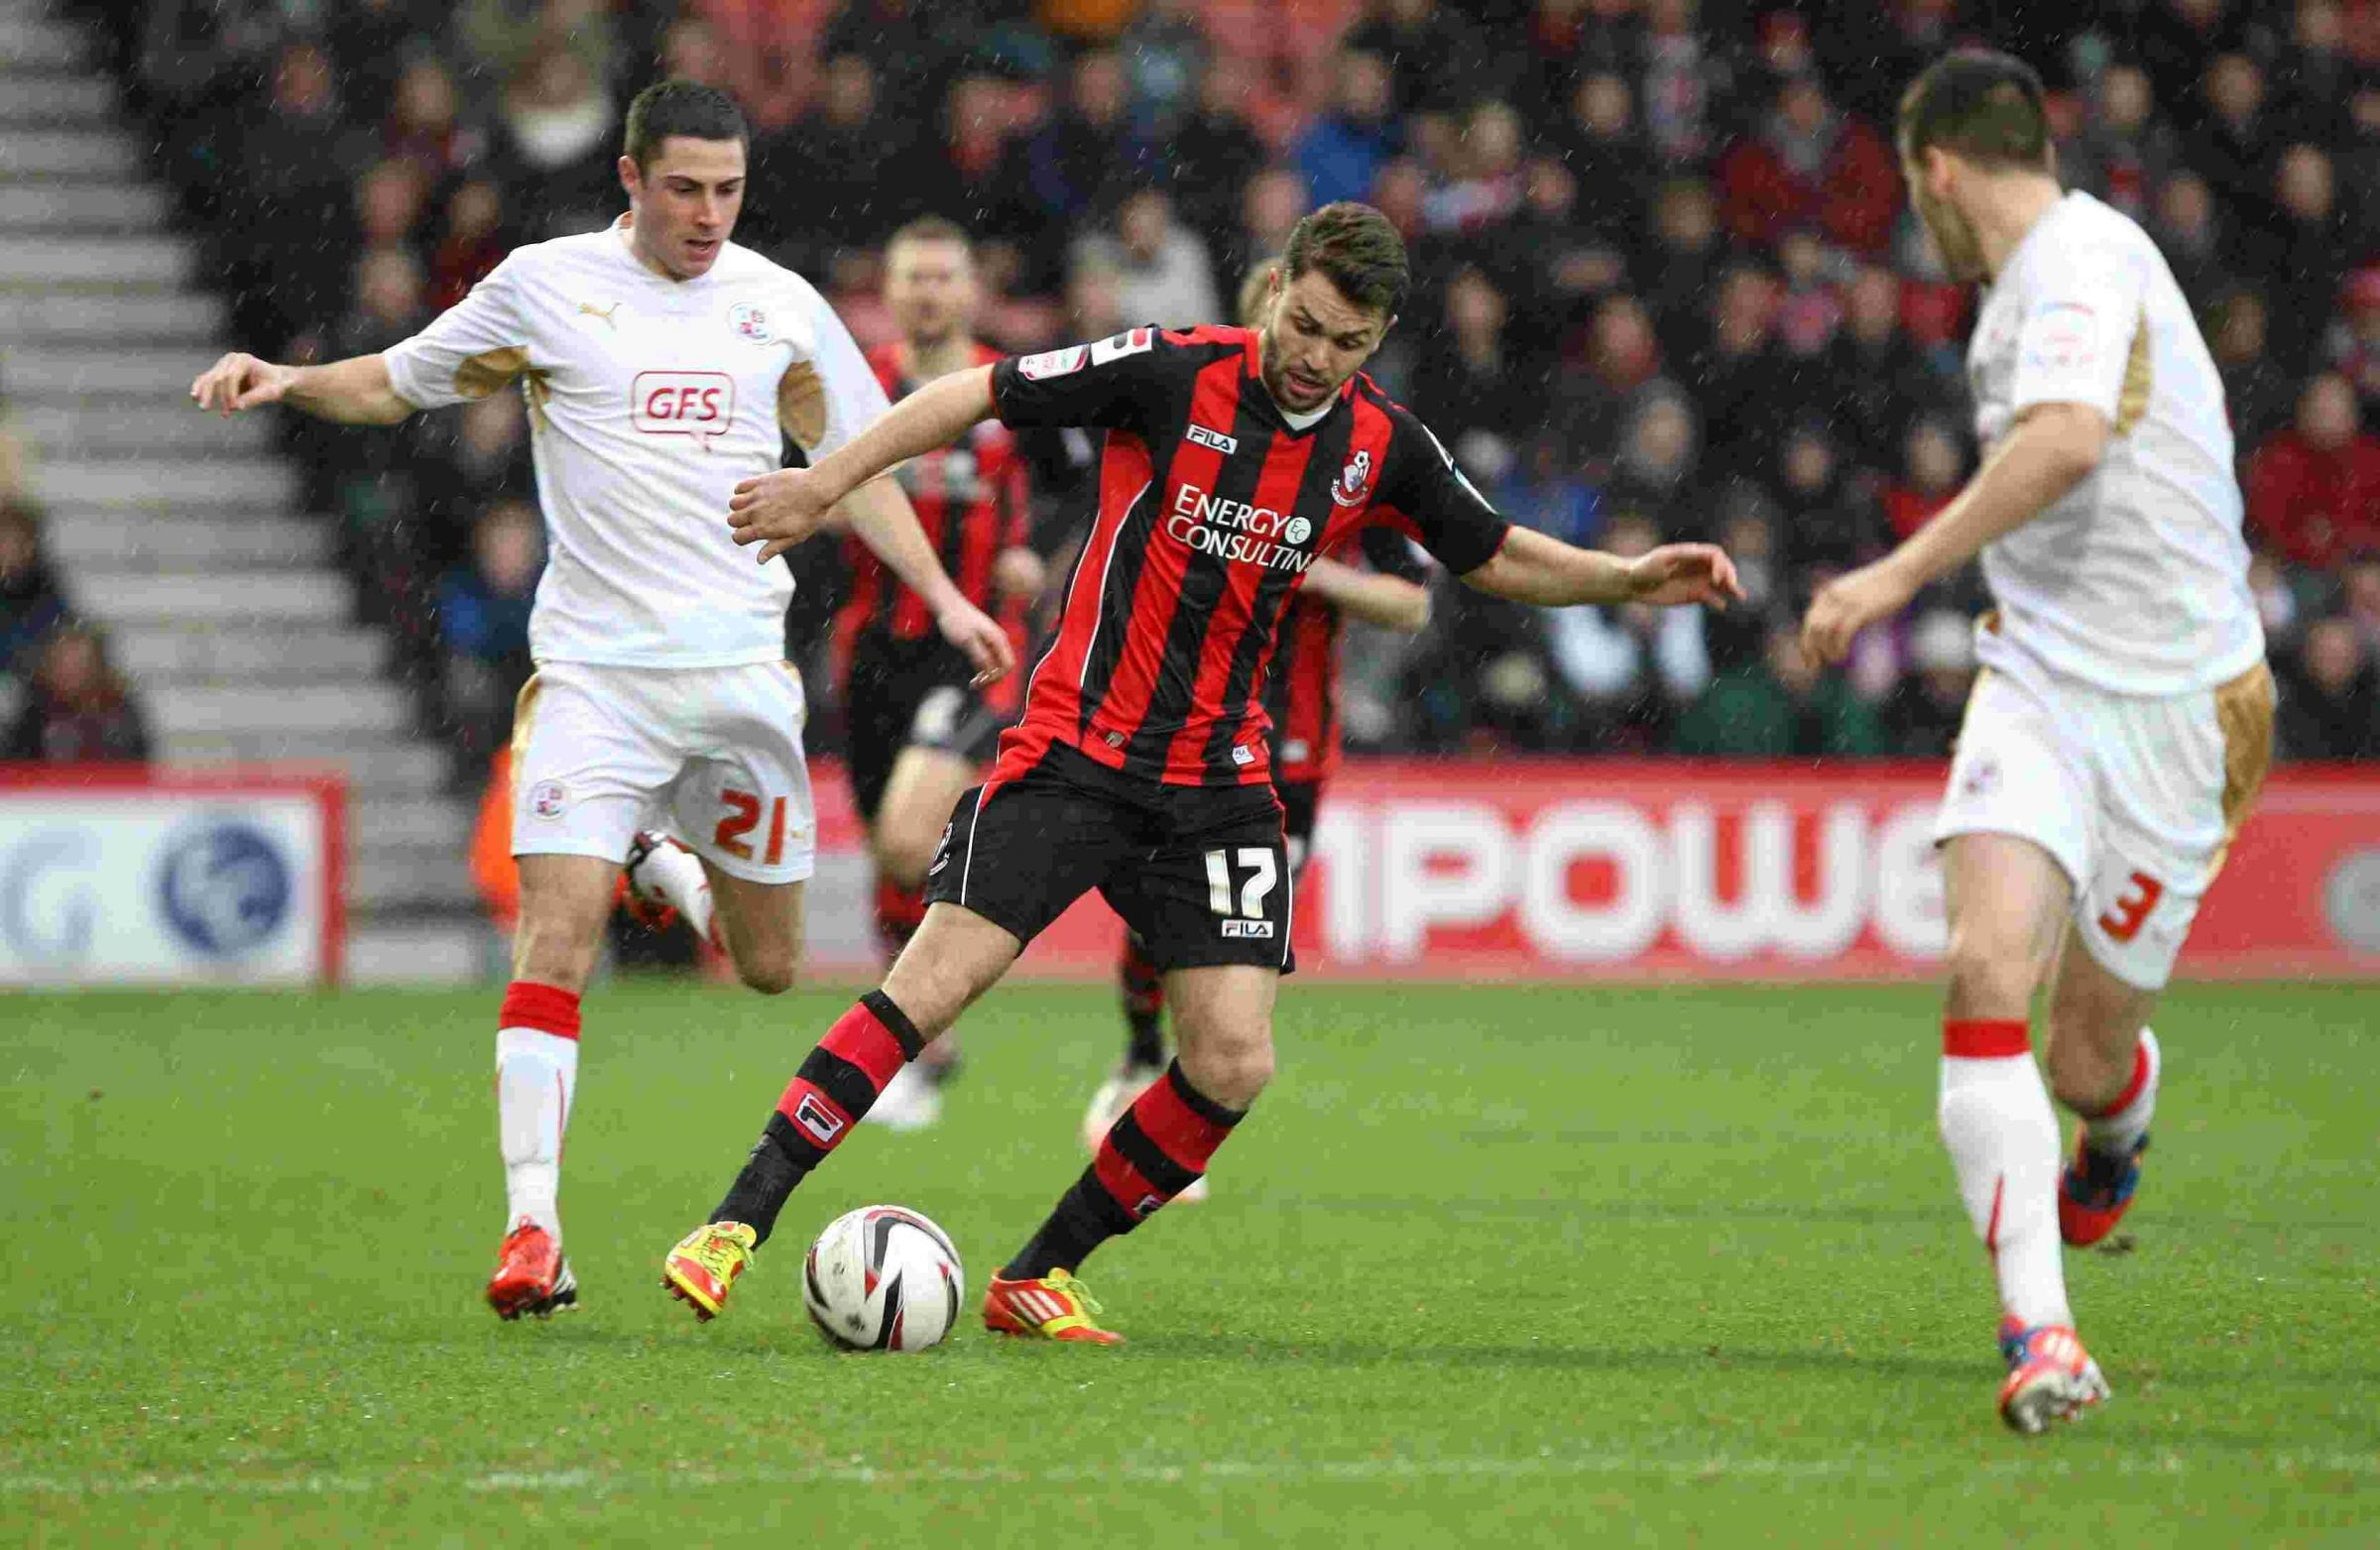 EXIT: Josh McQuoid in action for Cherries against Crawley in 2012